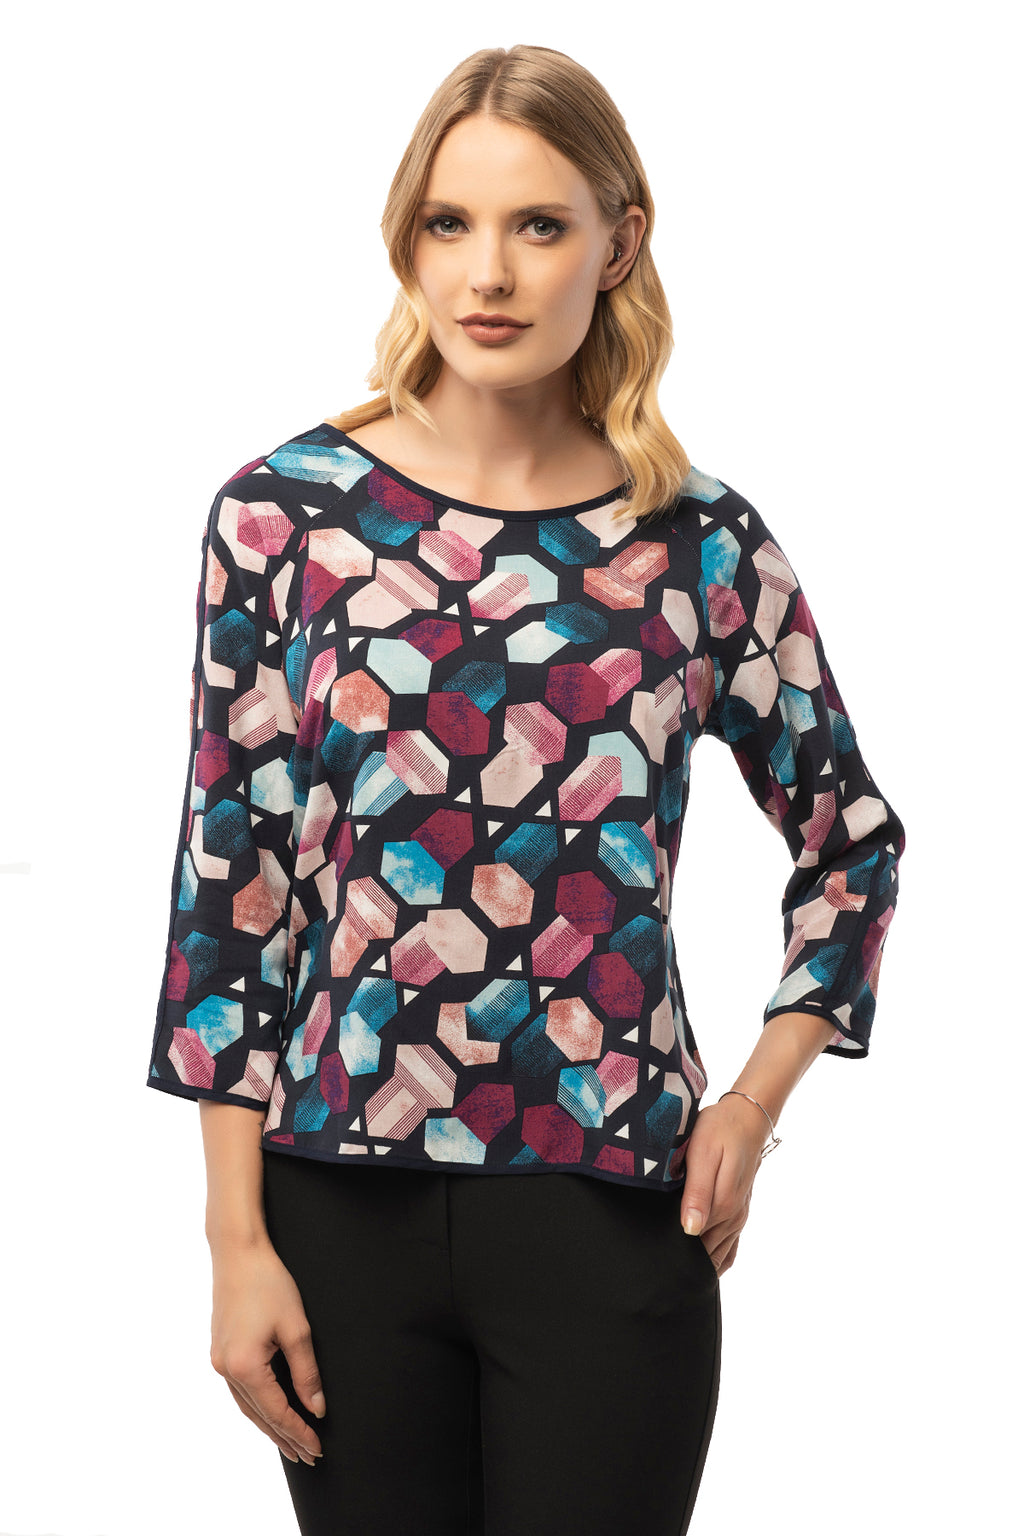 Casual Colorful Blouse - 3/4 Sleeve